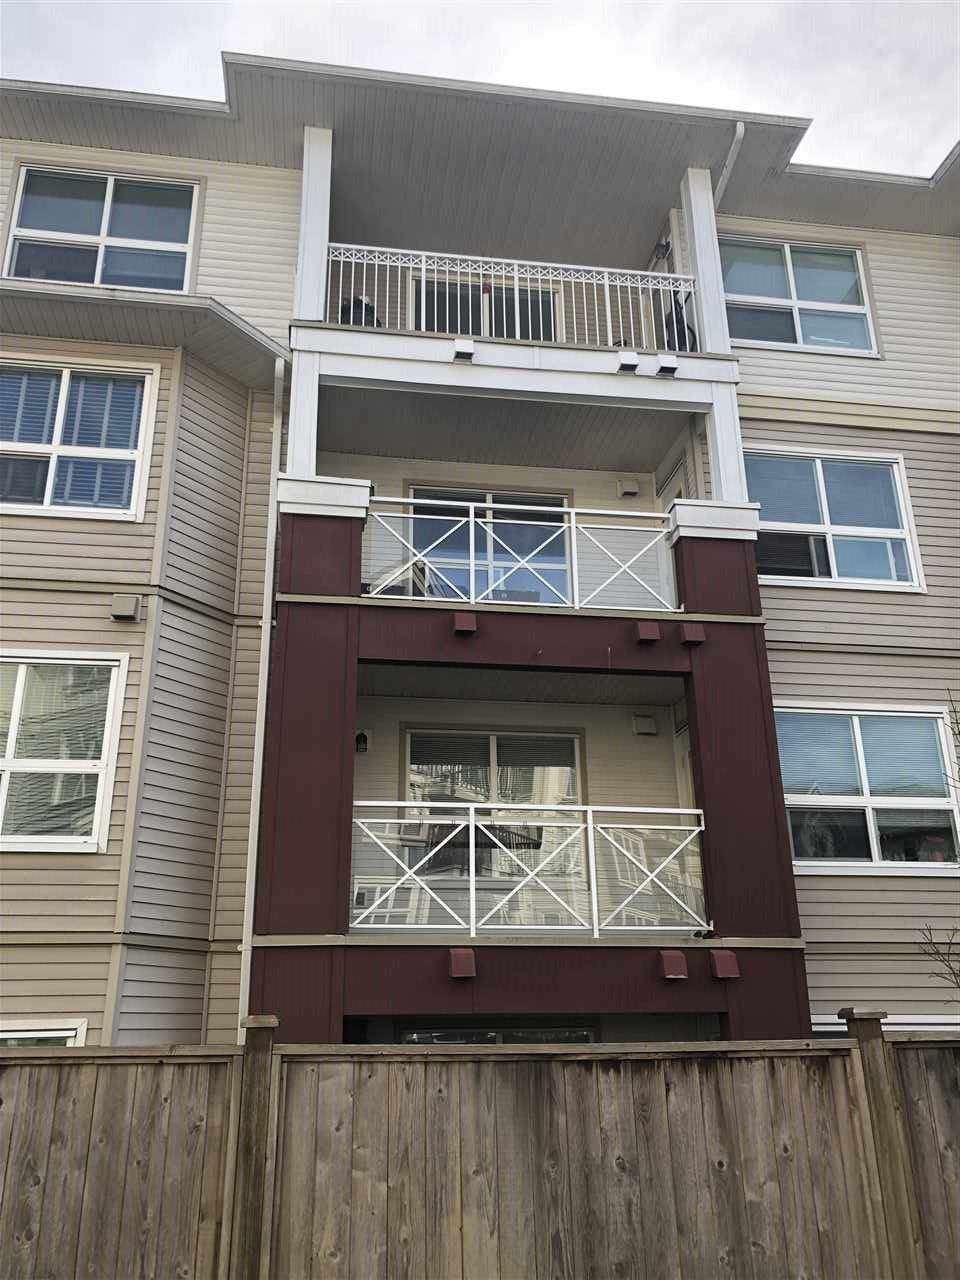 """Main Photo: 308 8068 120A Street in Surrey: Queen Mary Park Surrey Condo for sale in """"Melrose Place"""" : MLS®# R2549612"""